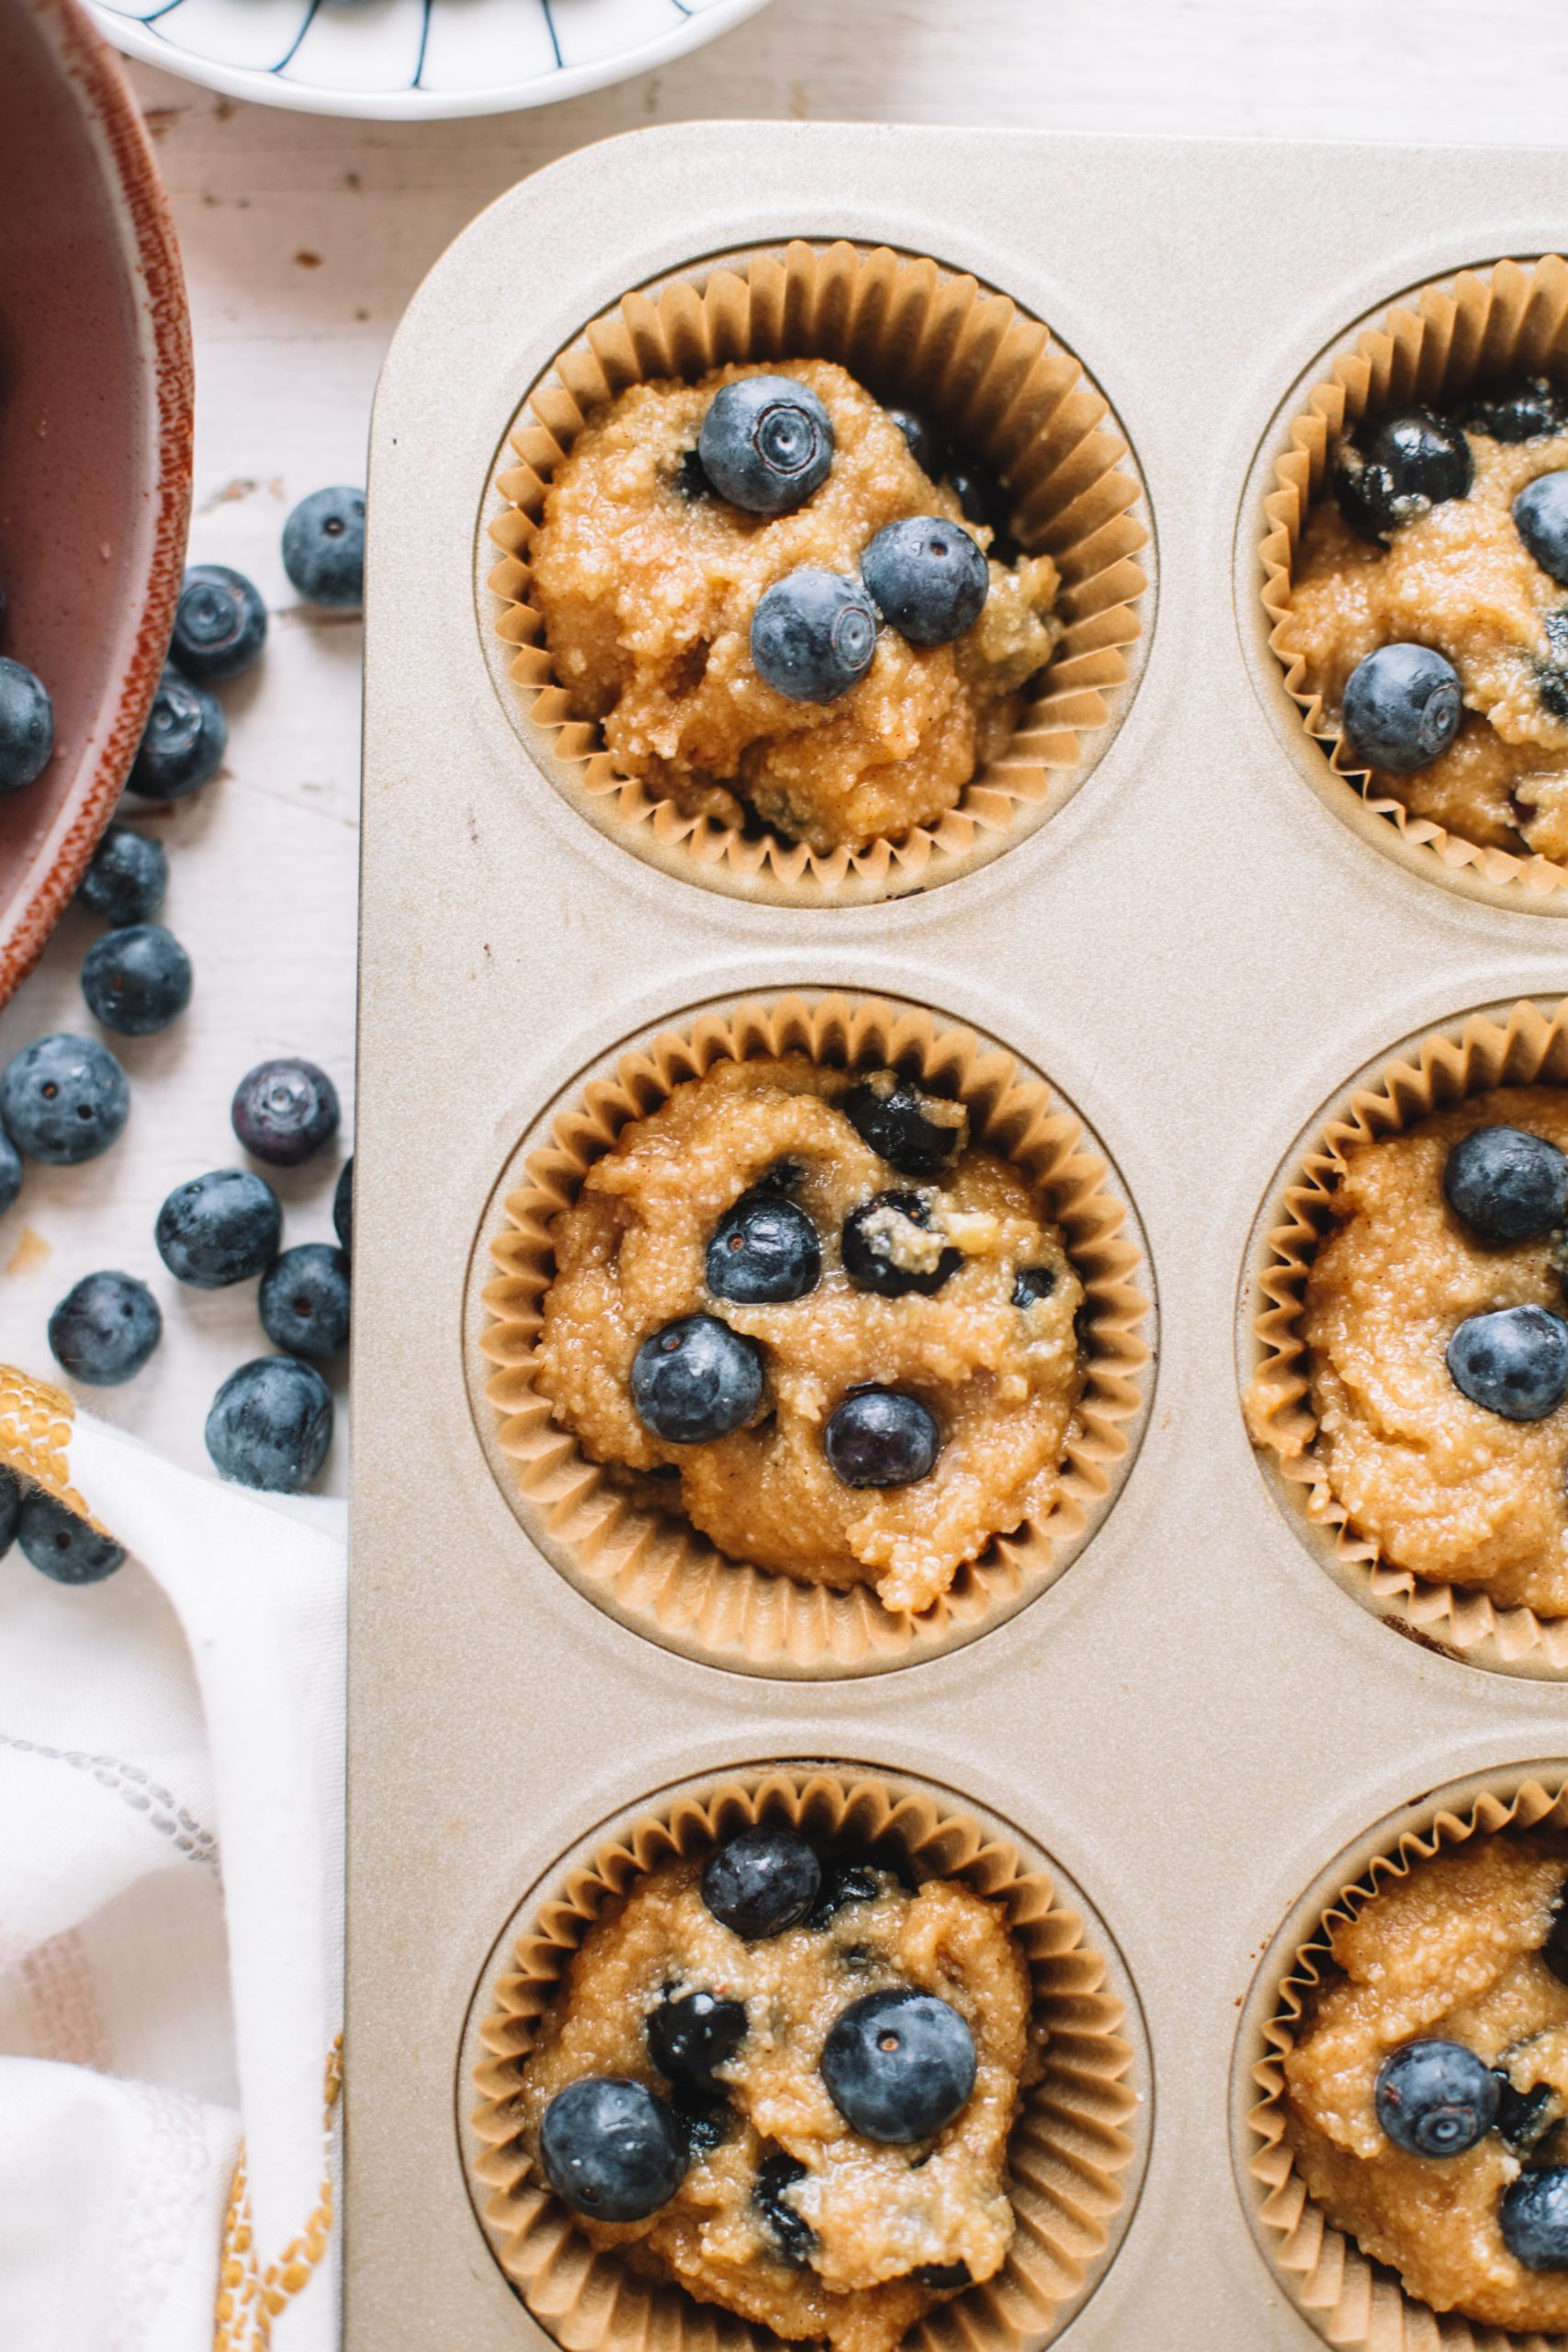 Blueberry muffin batter scooped into cupcake tin.